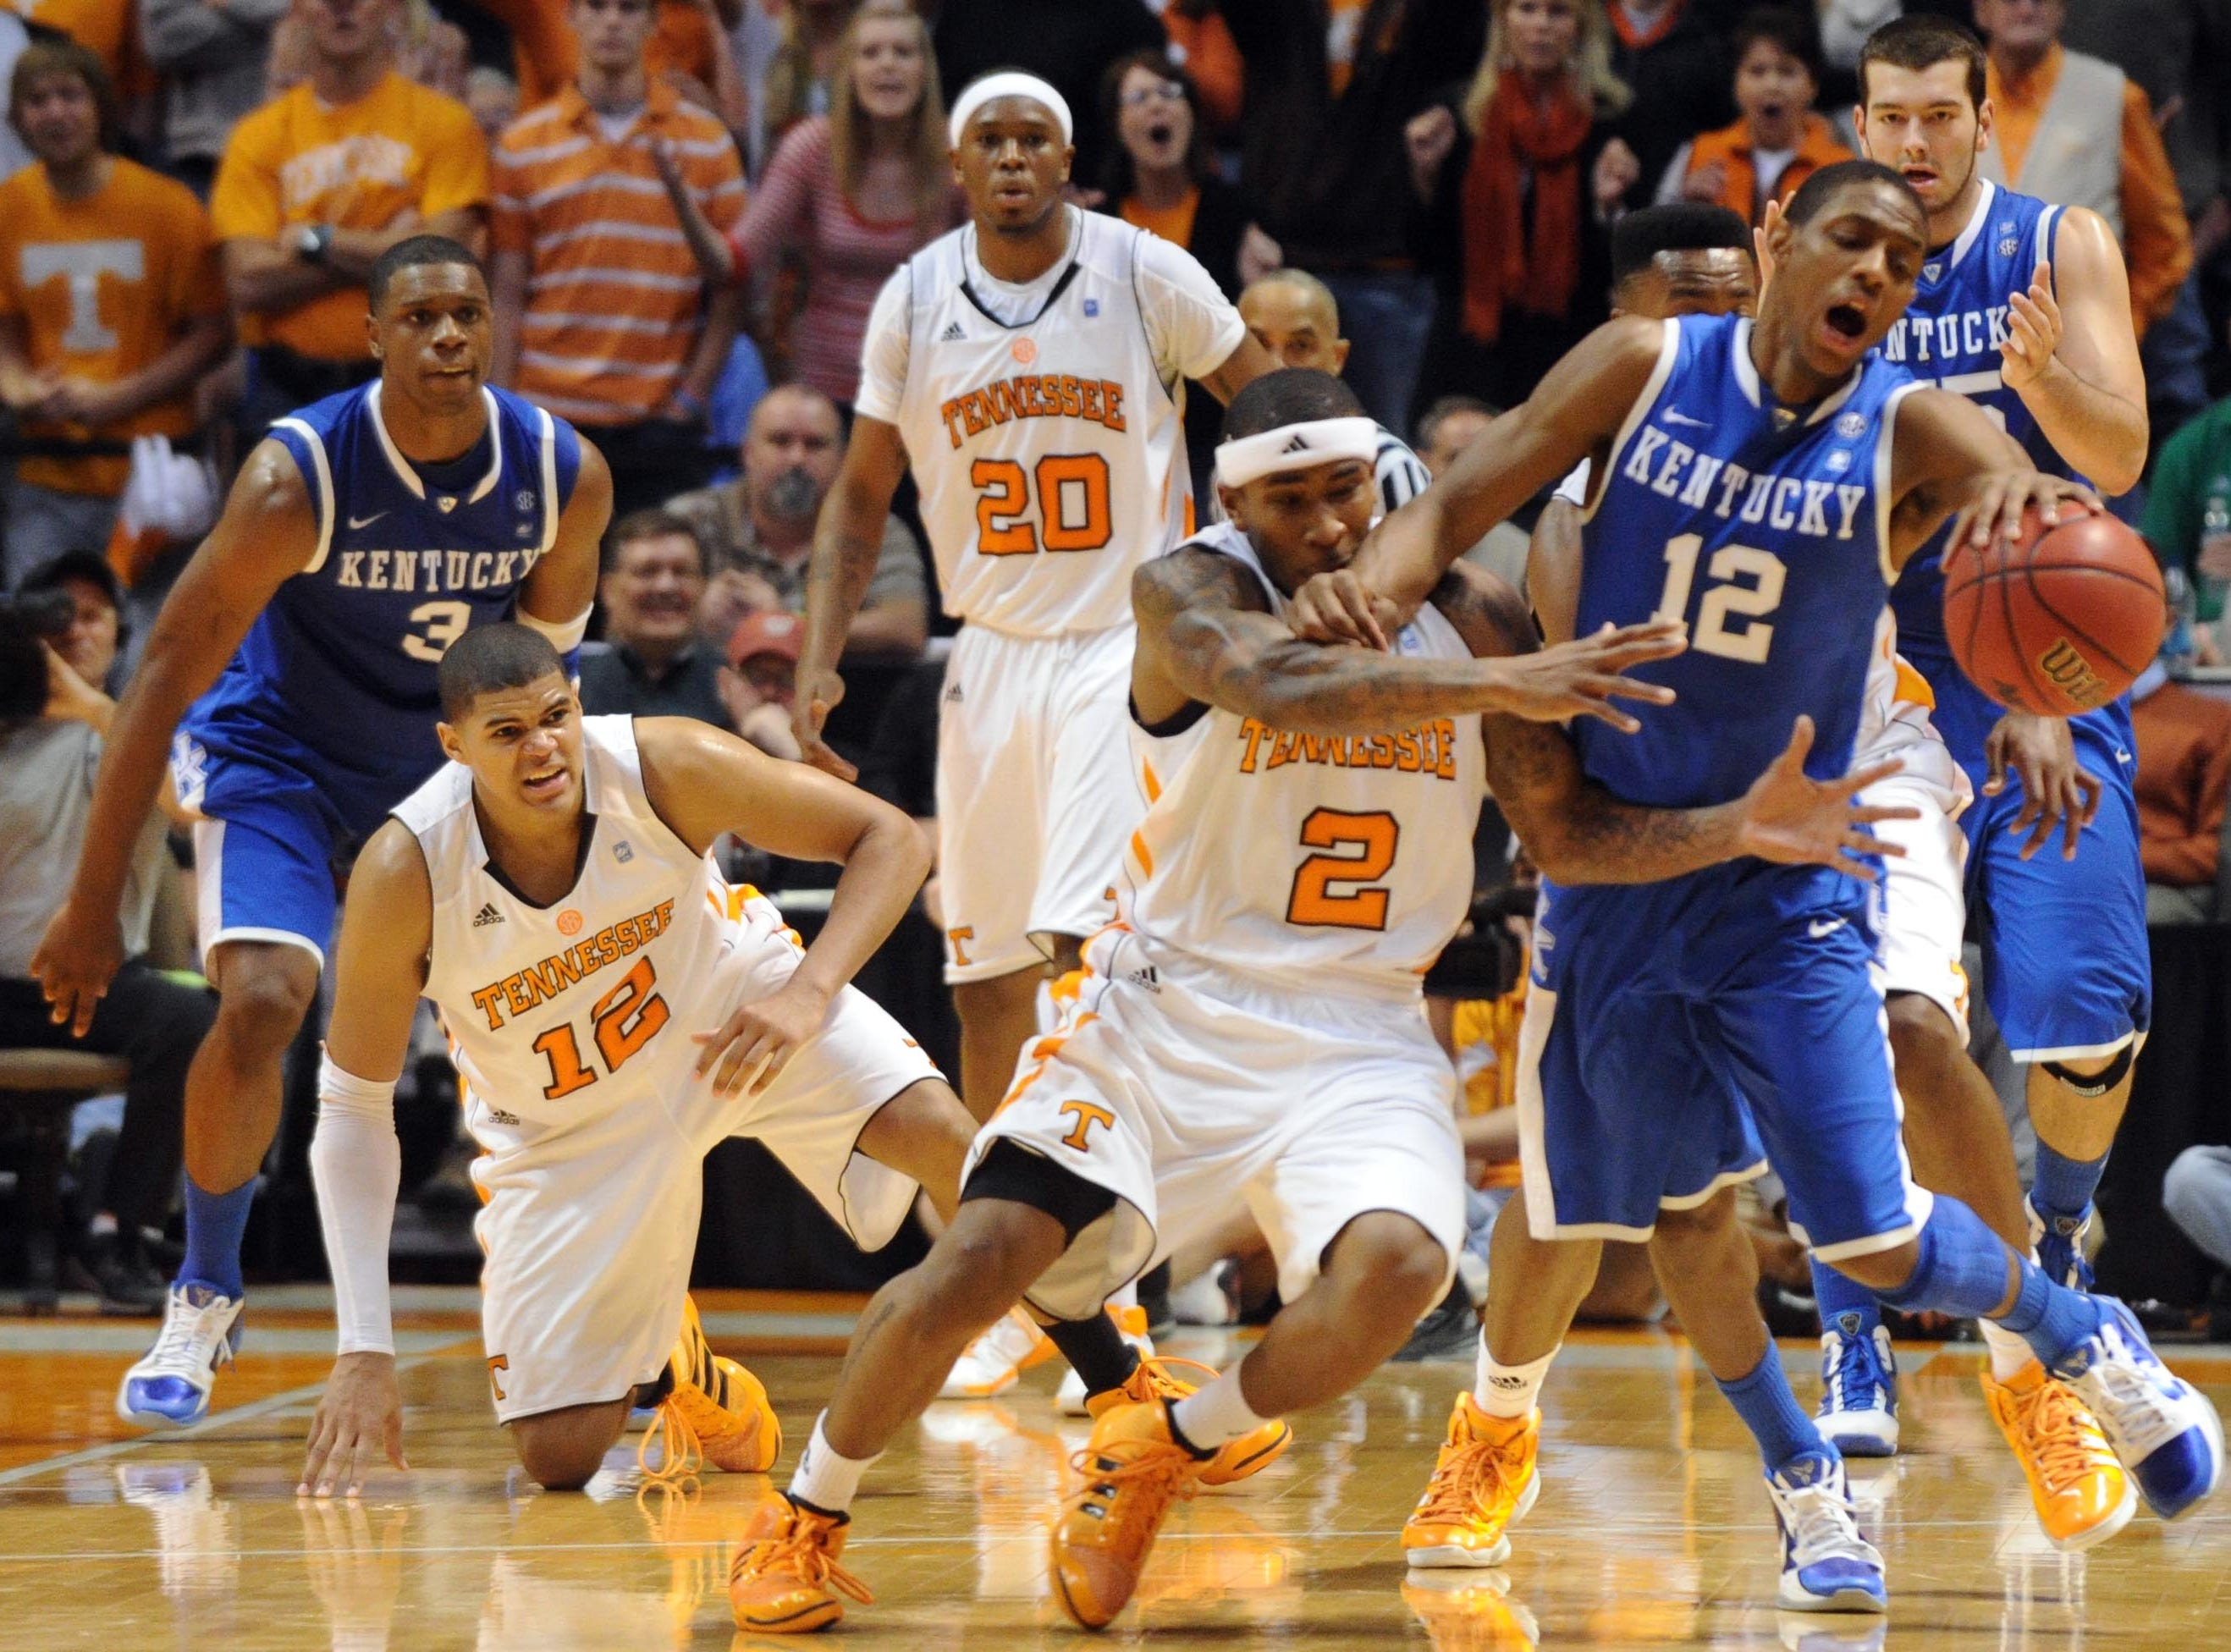 Tennessee's Melvin Goins attempts to steal the ball from Kentucky's Brandon Knight. 